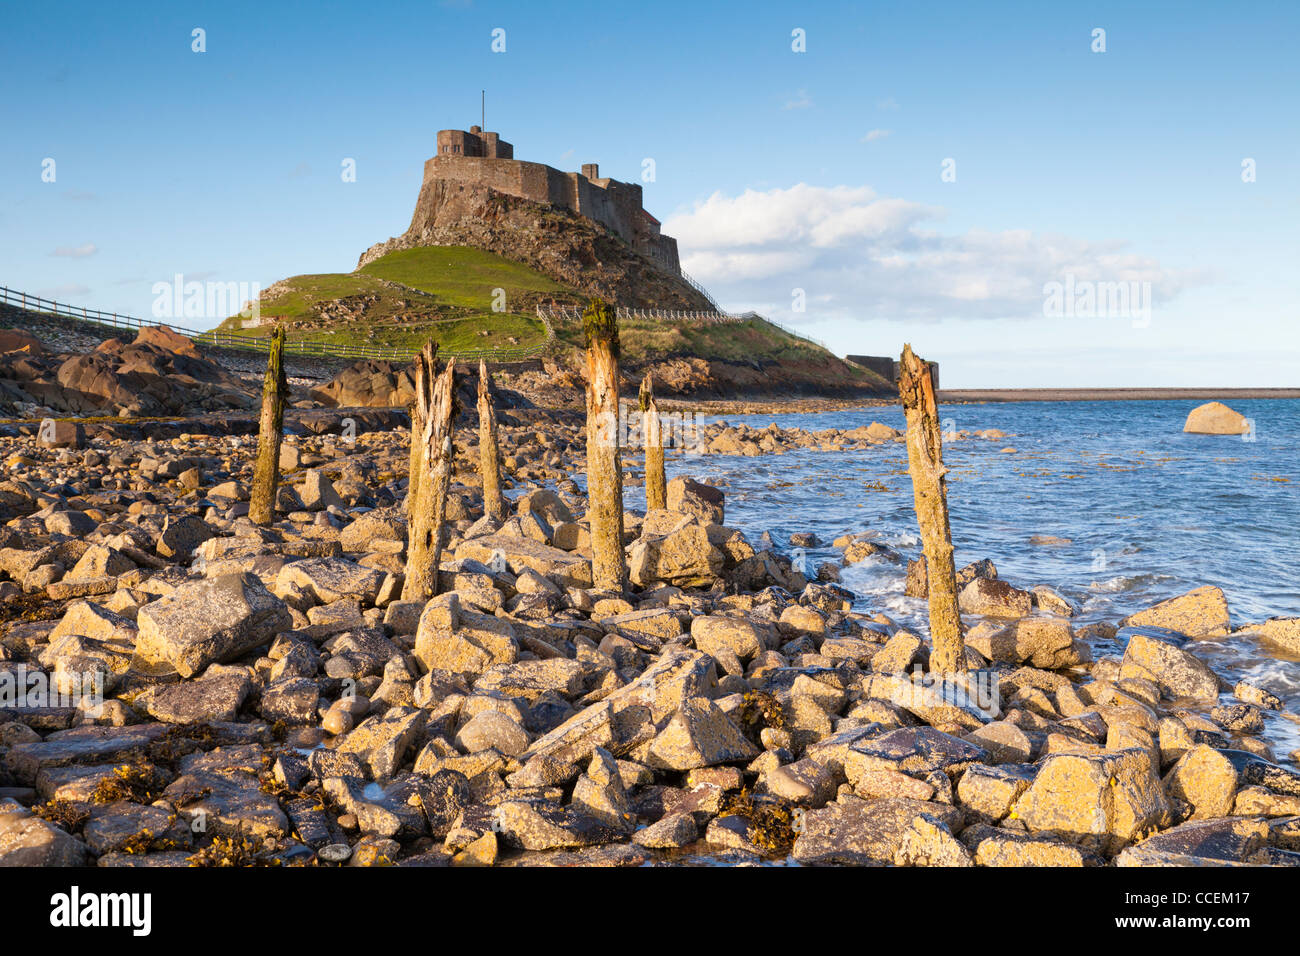 Lindisfarne Castle on Lindisfarne or Holy Island, just off the coast of Northumberland, England. - Stock Image